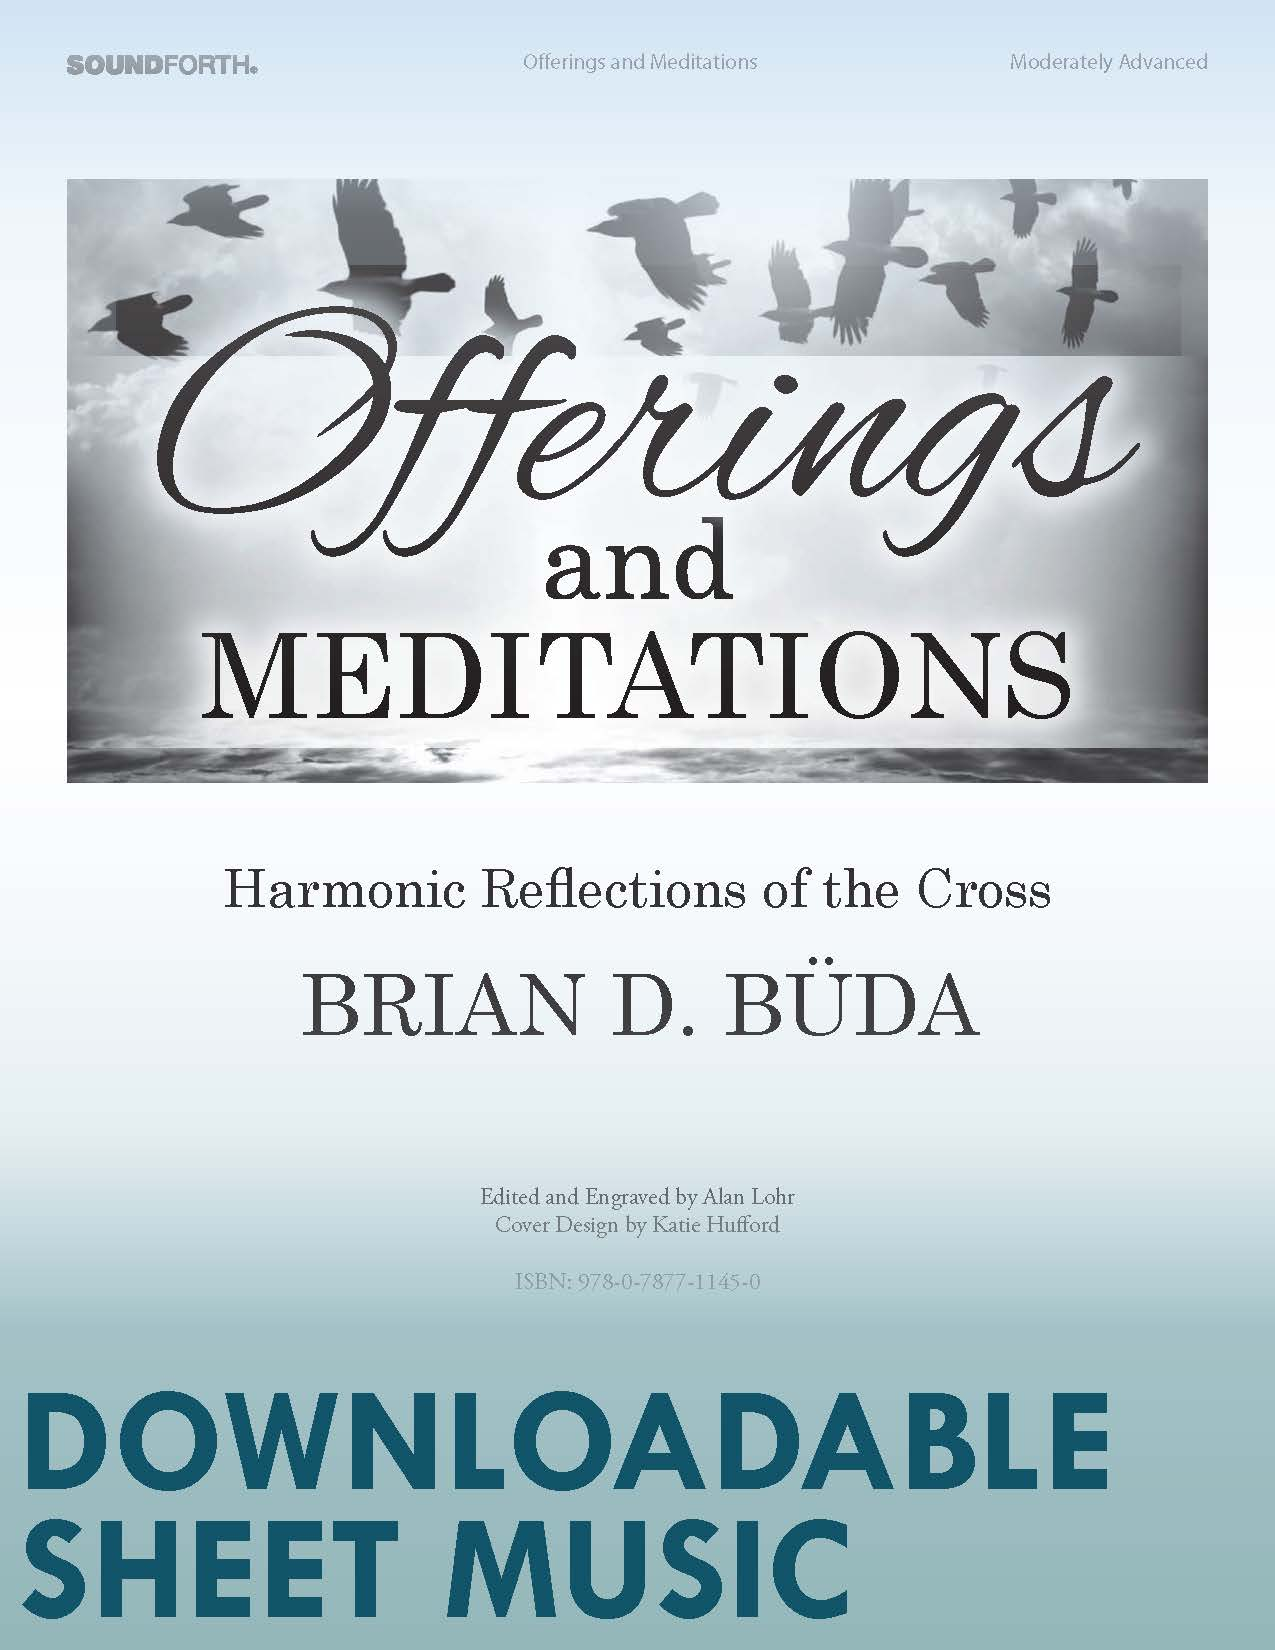 Offerings and Meditations - Digital Download